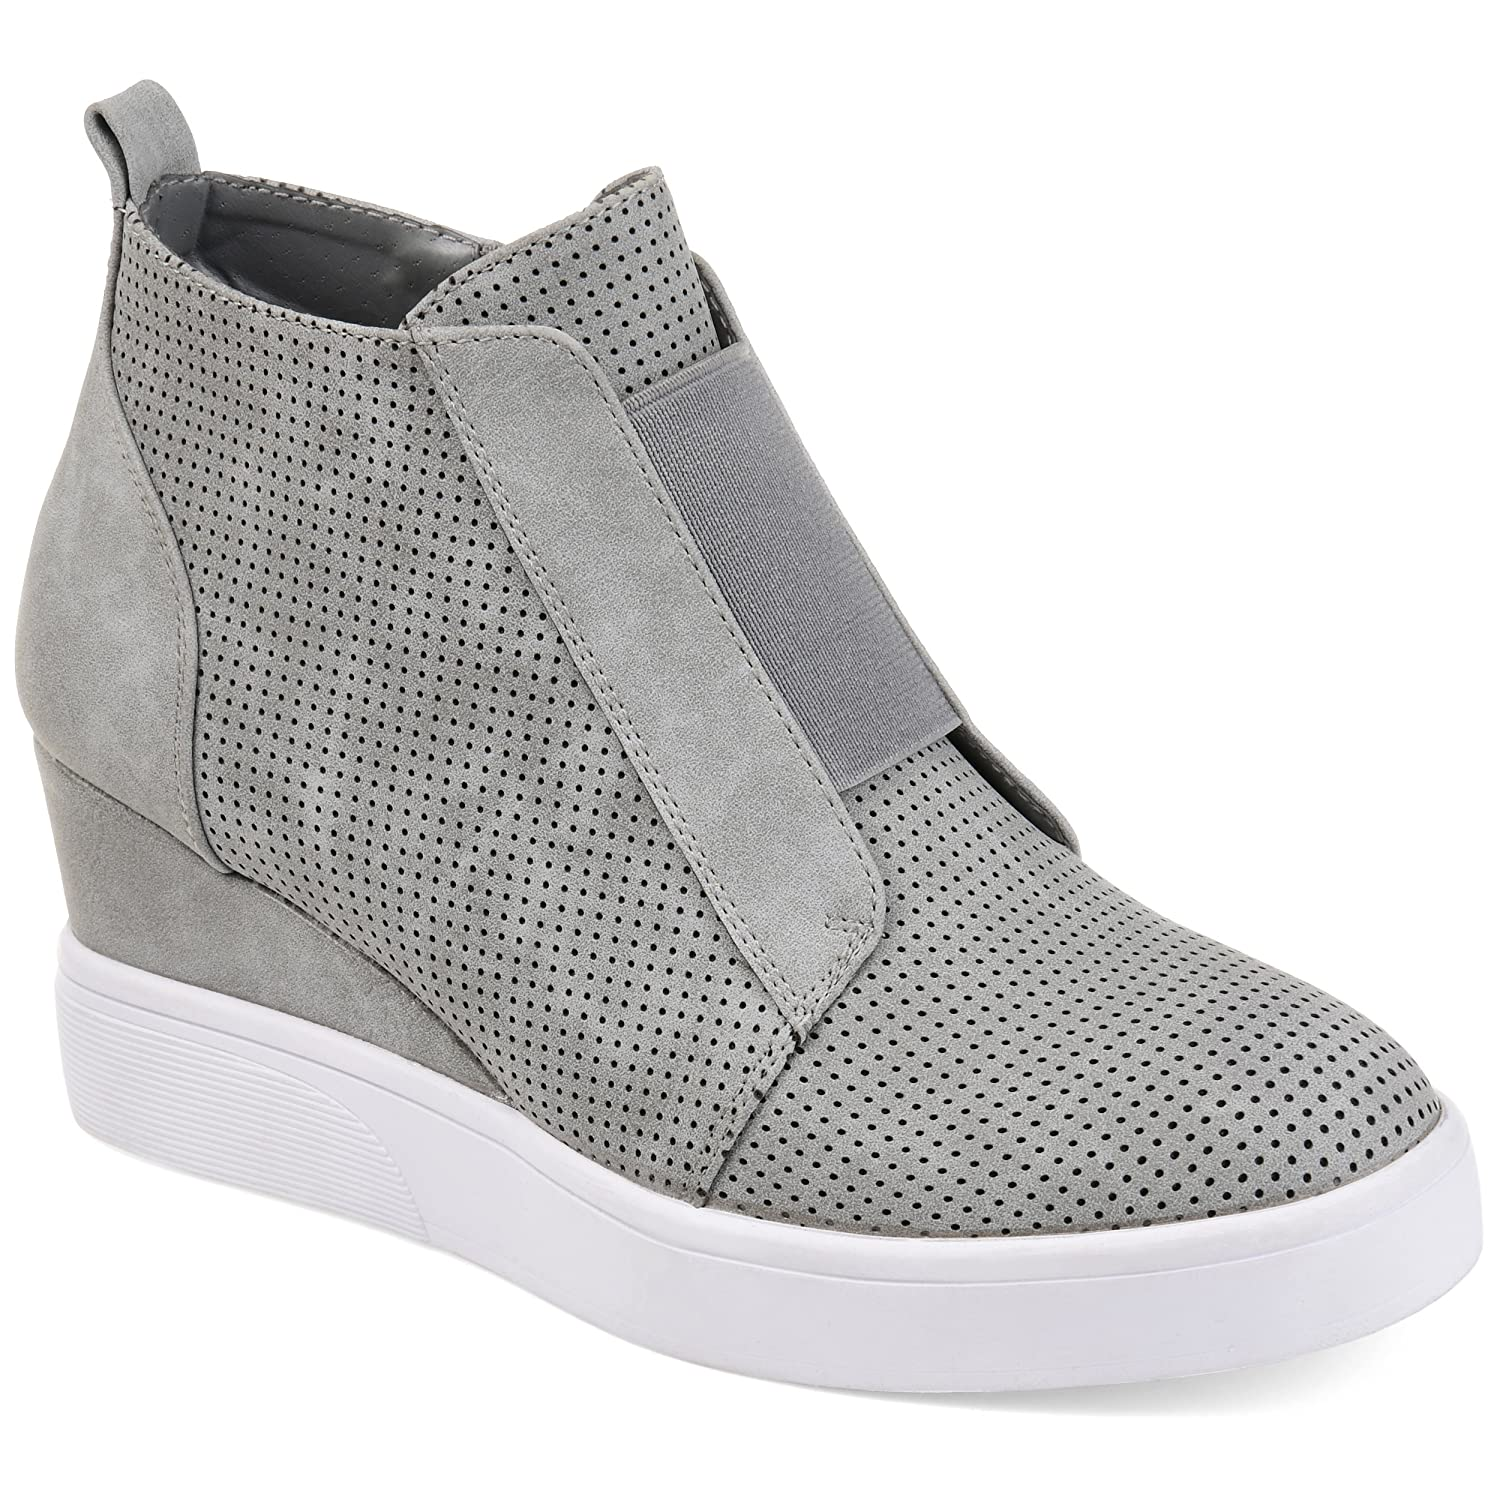 Journee Collection Womens Athleisure Laser-Cut Side-Zip Sneaker Wedges B07BYH8D9X 11 B(M) US|Grey